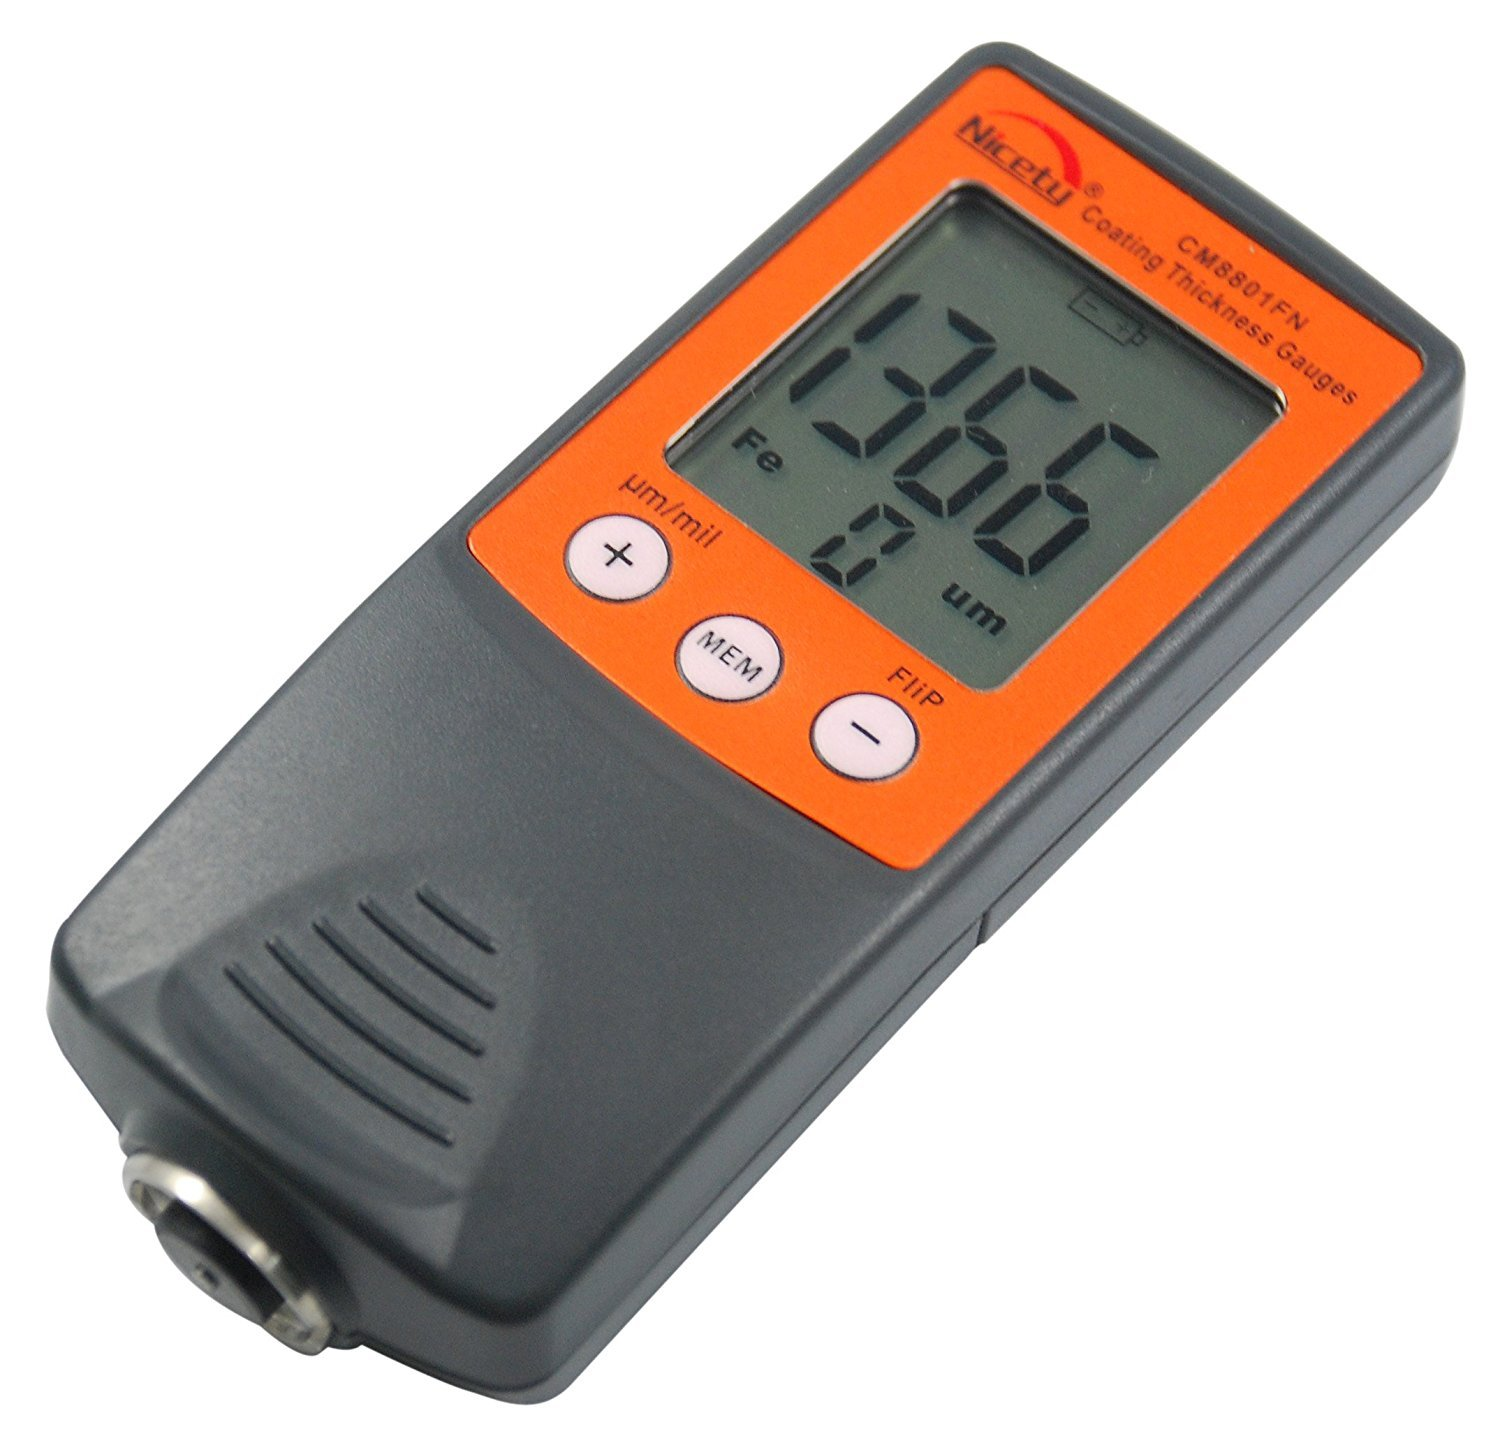 0-1250μm //0-50mil CM8811FN. Coating Thickness Gauge Range